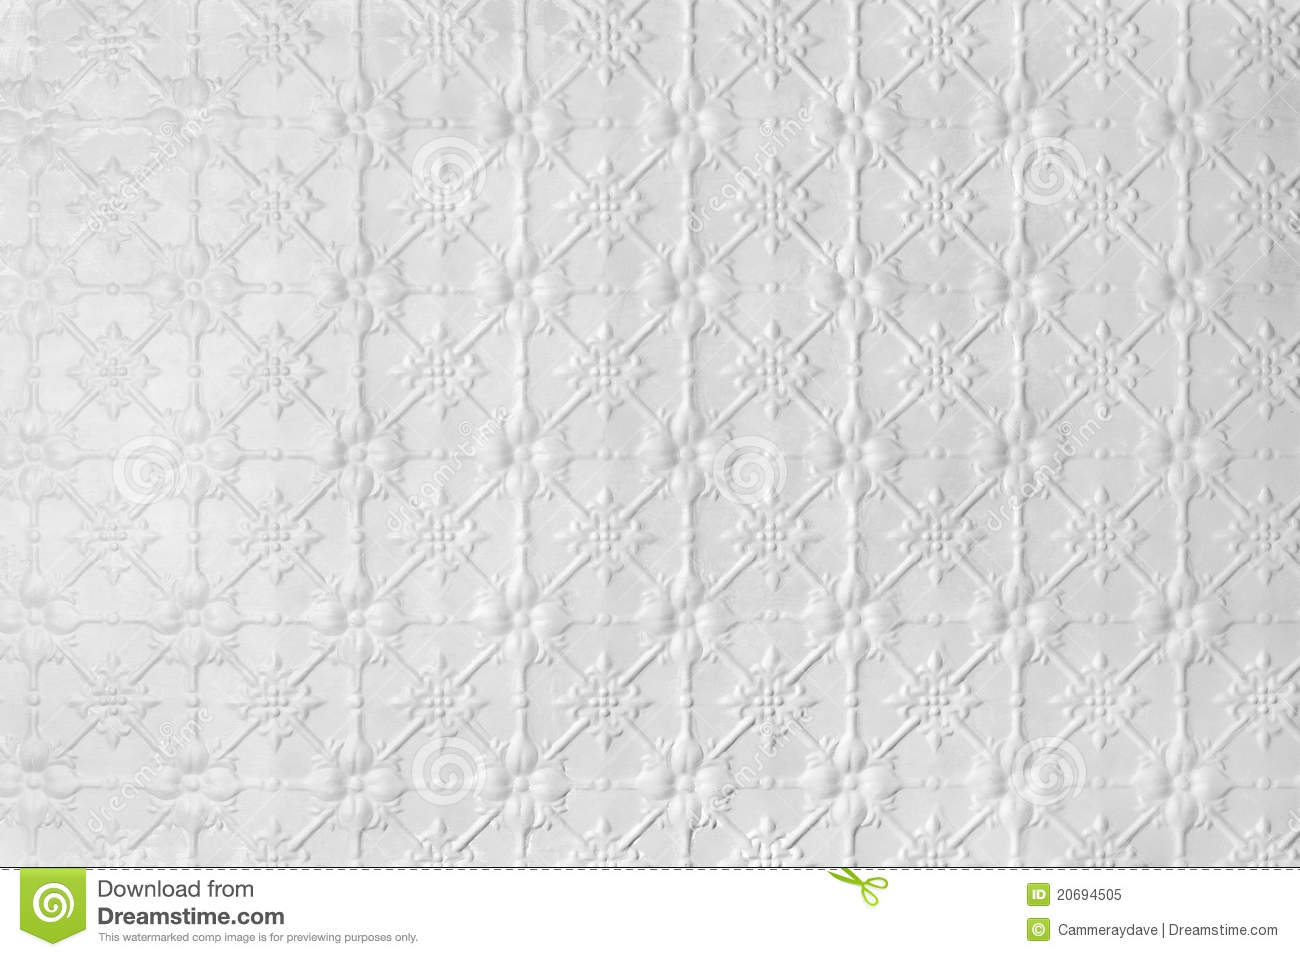 White Background Metal Texture Royalty Free Stock Photo - Image: 20694505